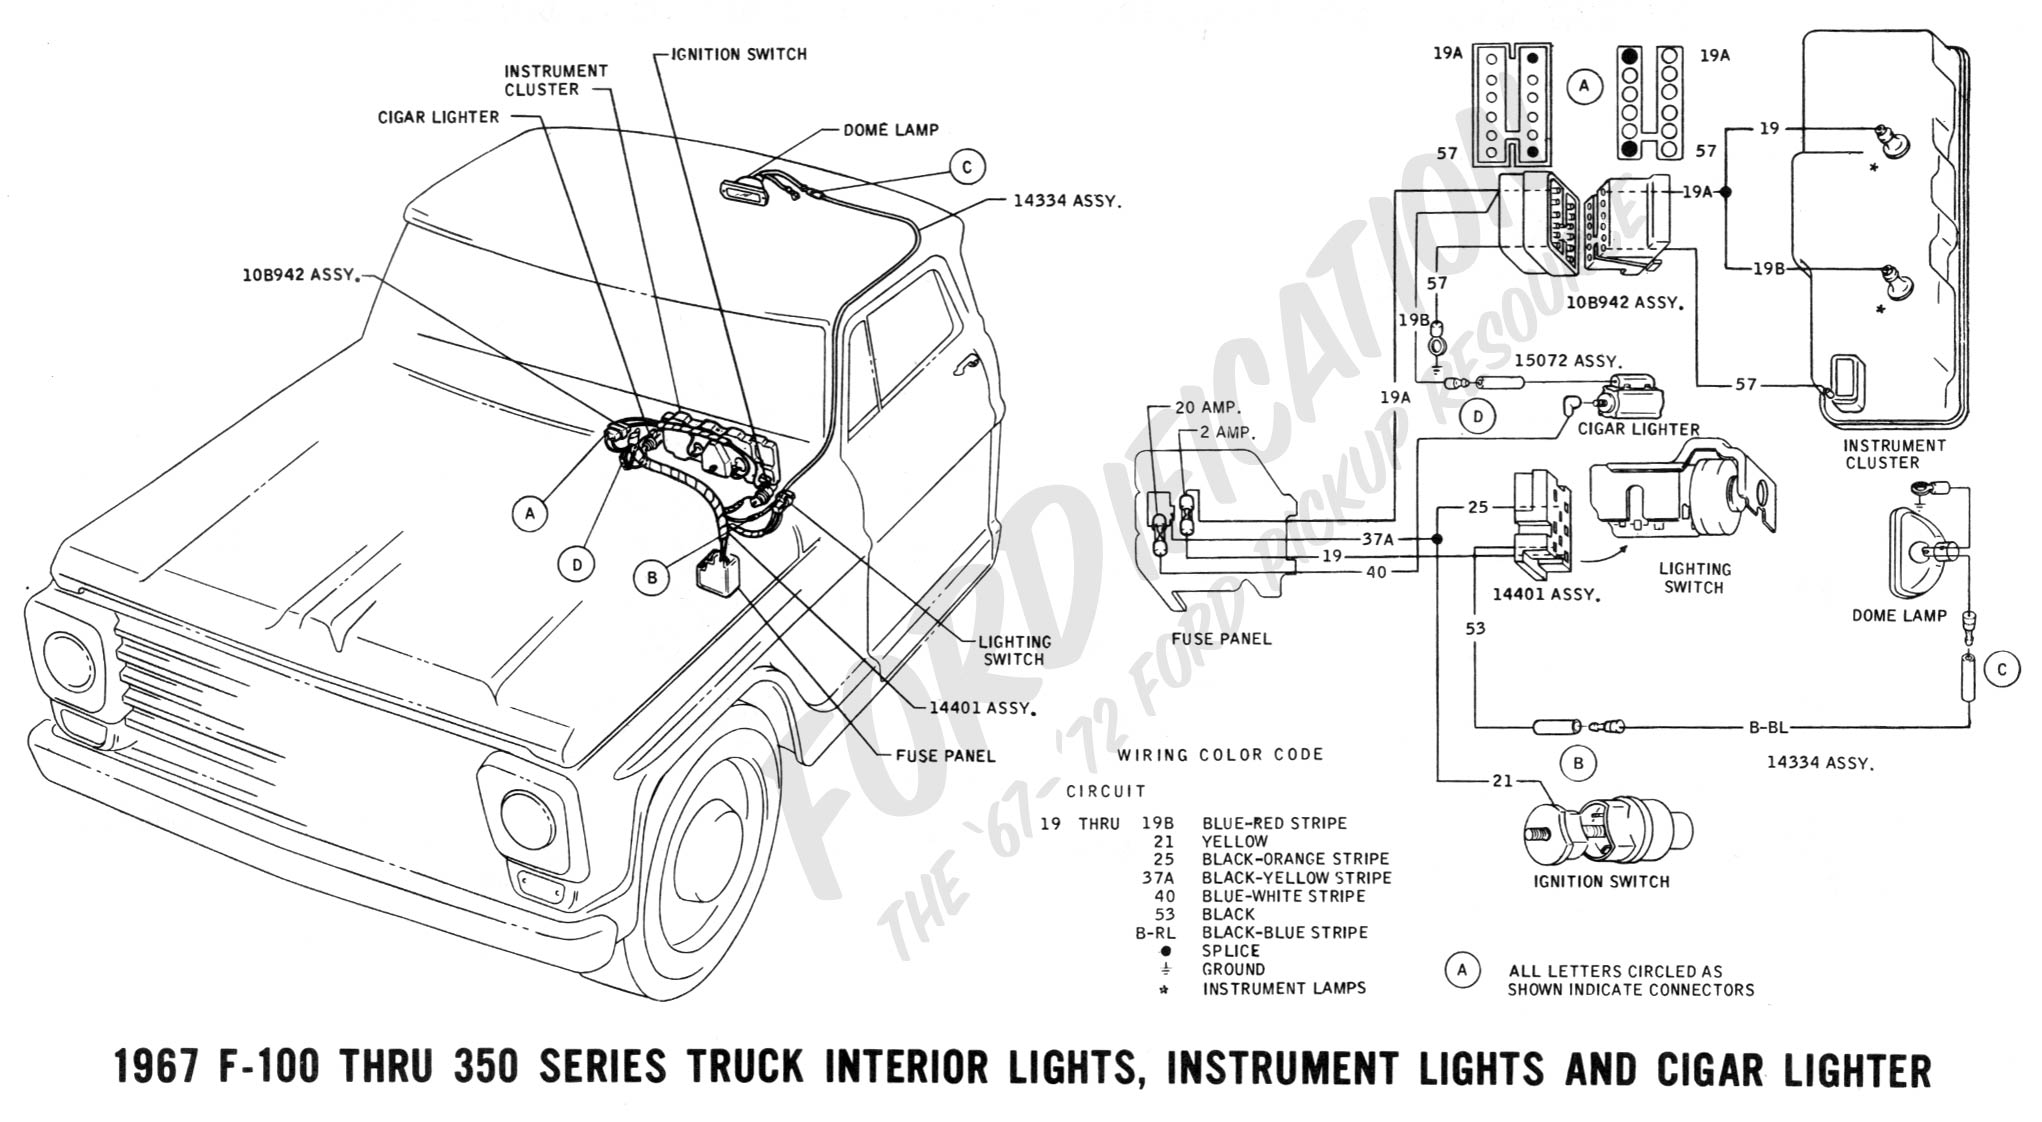 1968 f100 wiring diagram labeled of a motor car ford truck technical drawings and schematics section h